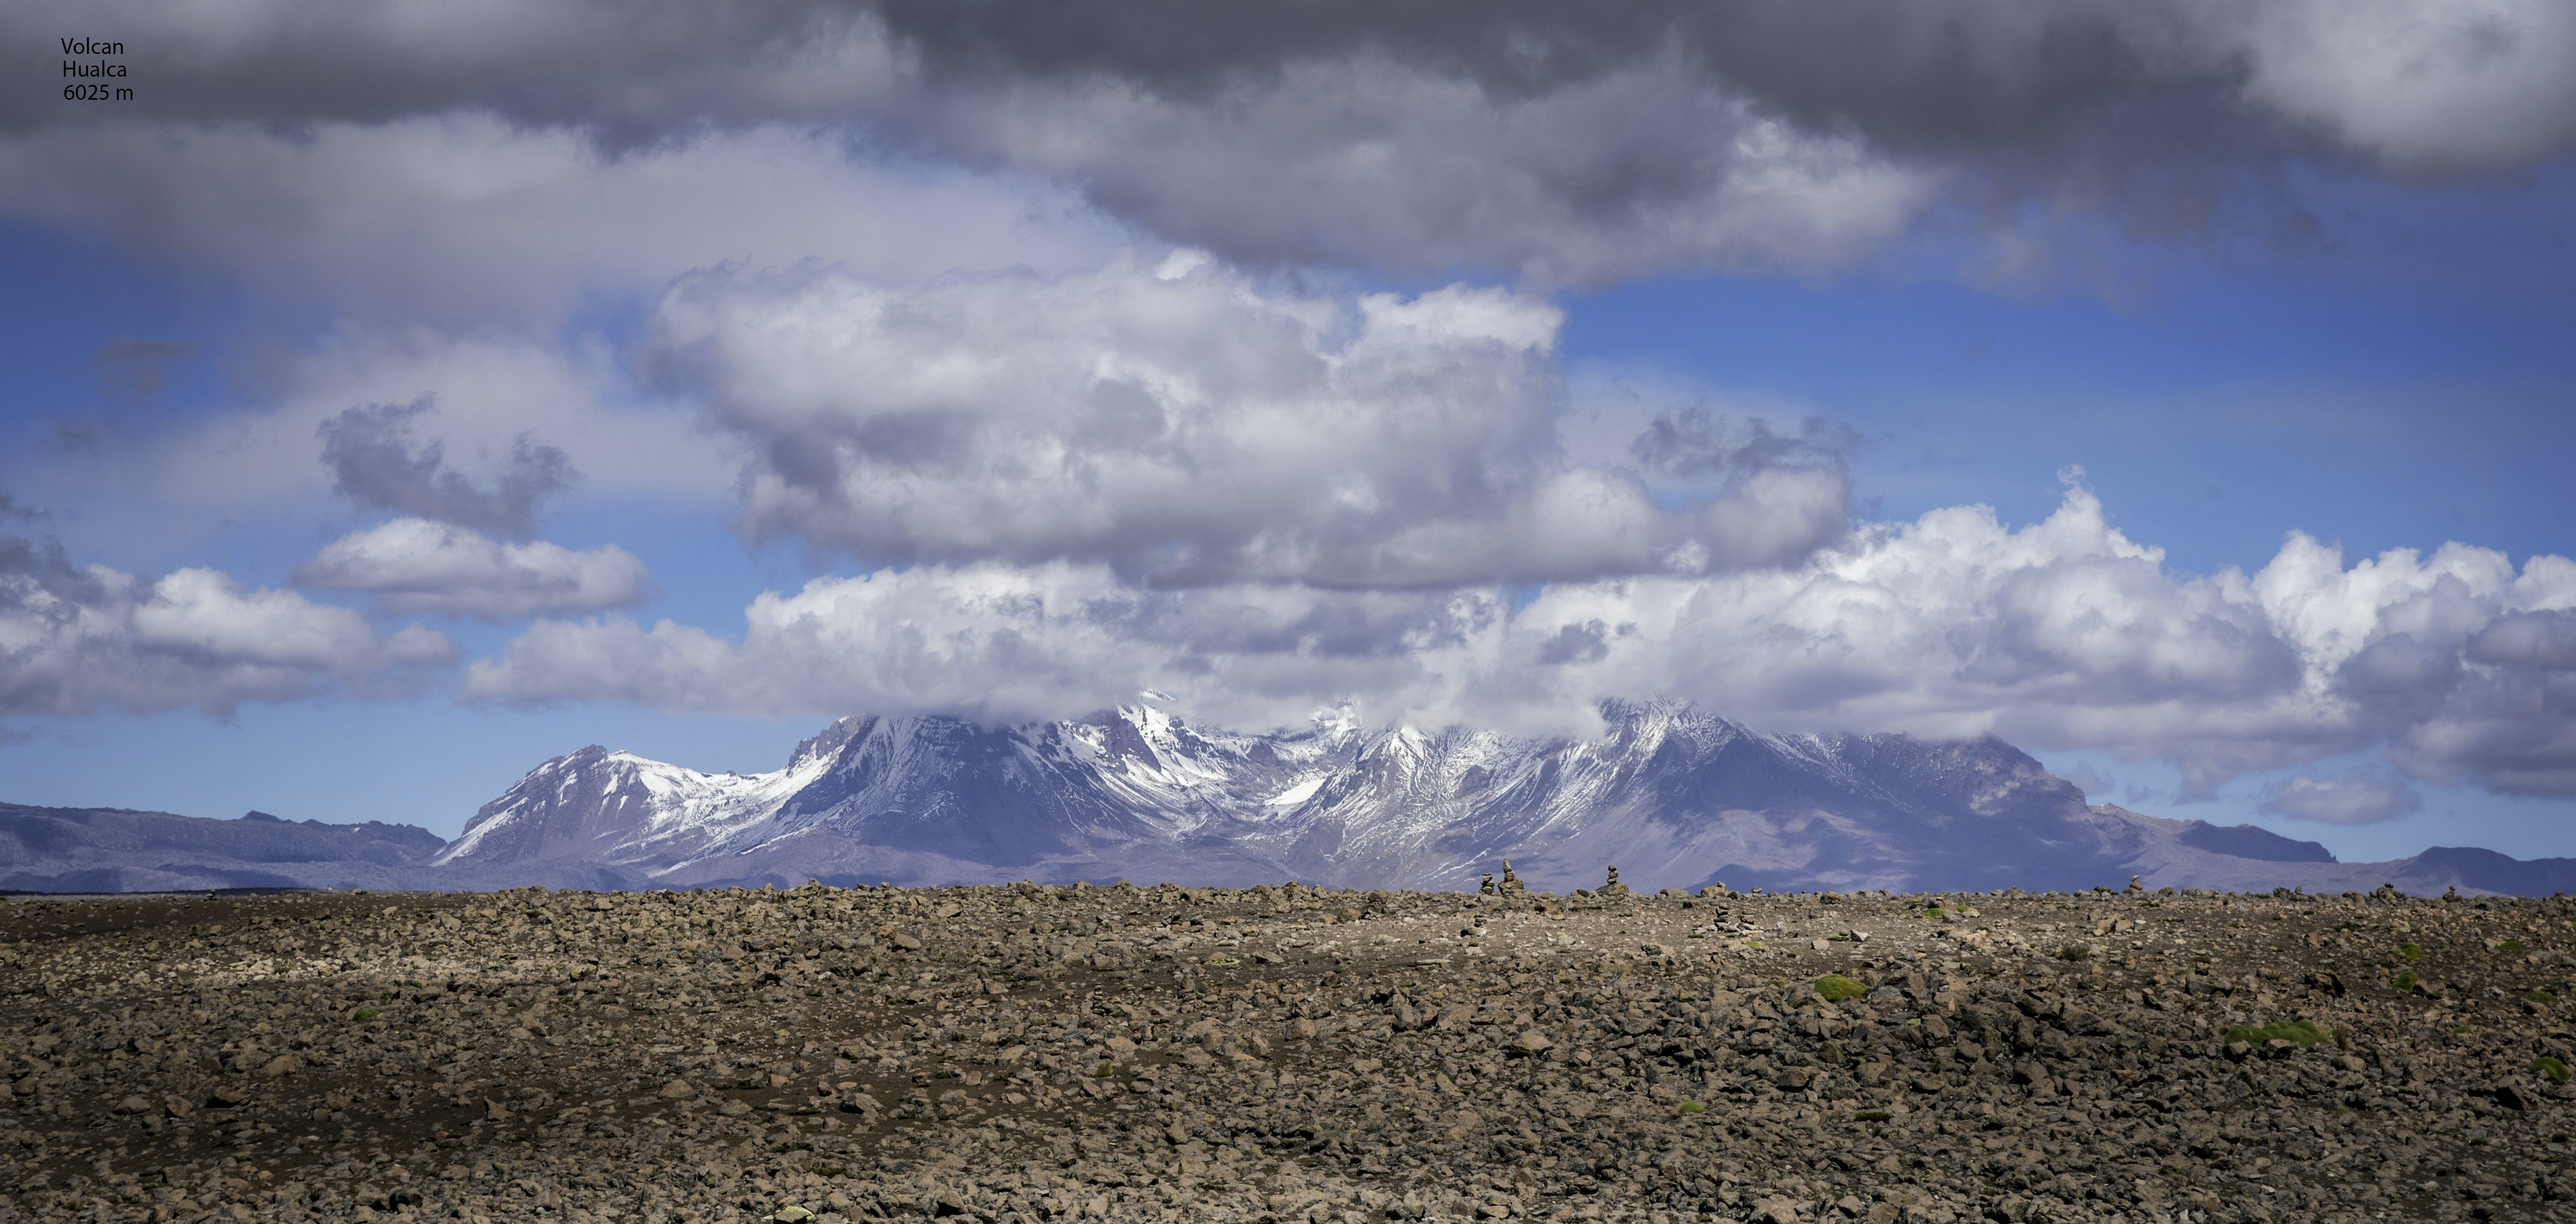 Mountain and Dried Soil